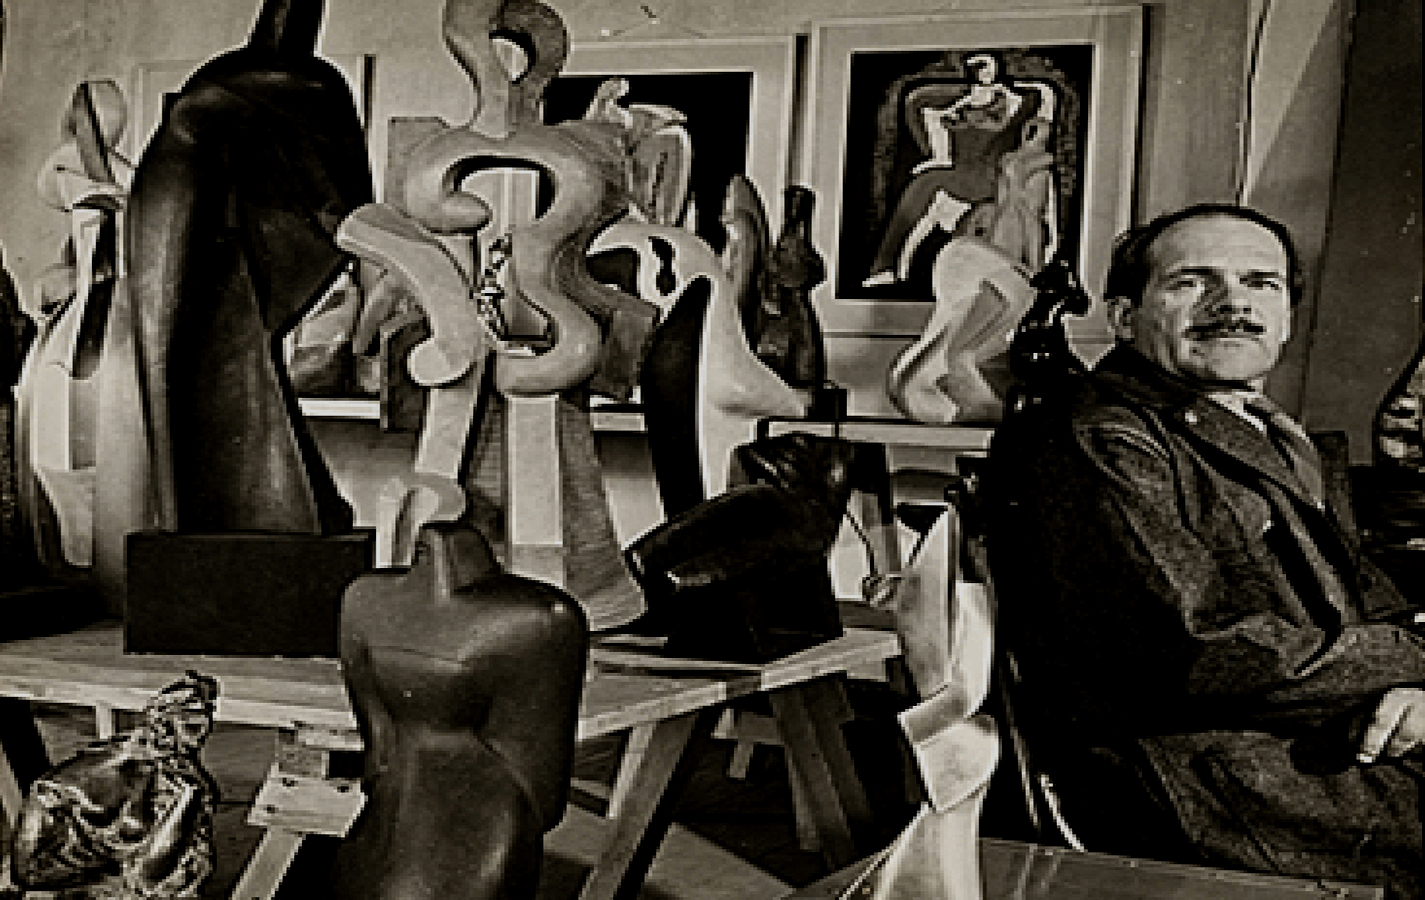 The sensual cubist artworks of Alexander Archipenko